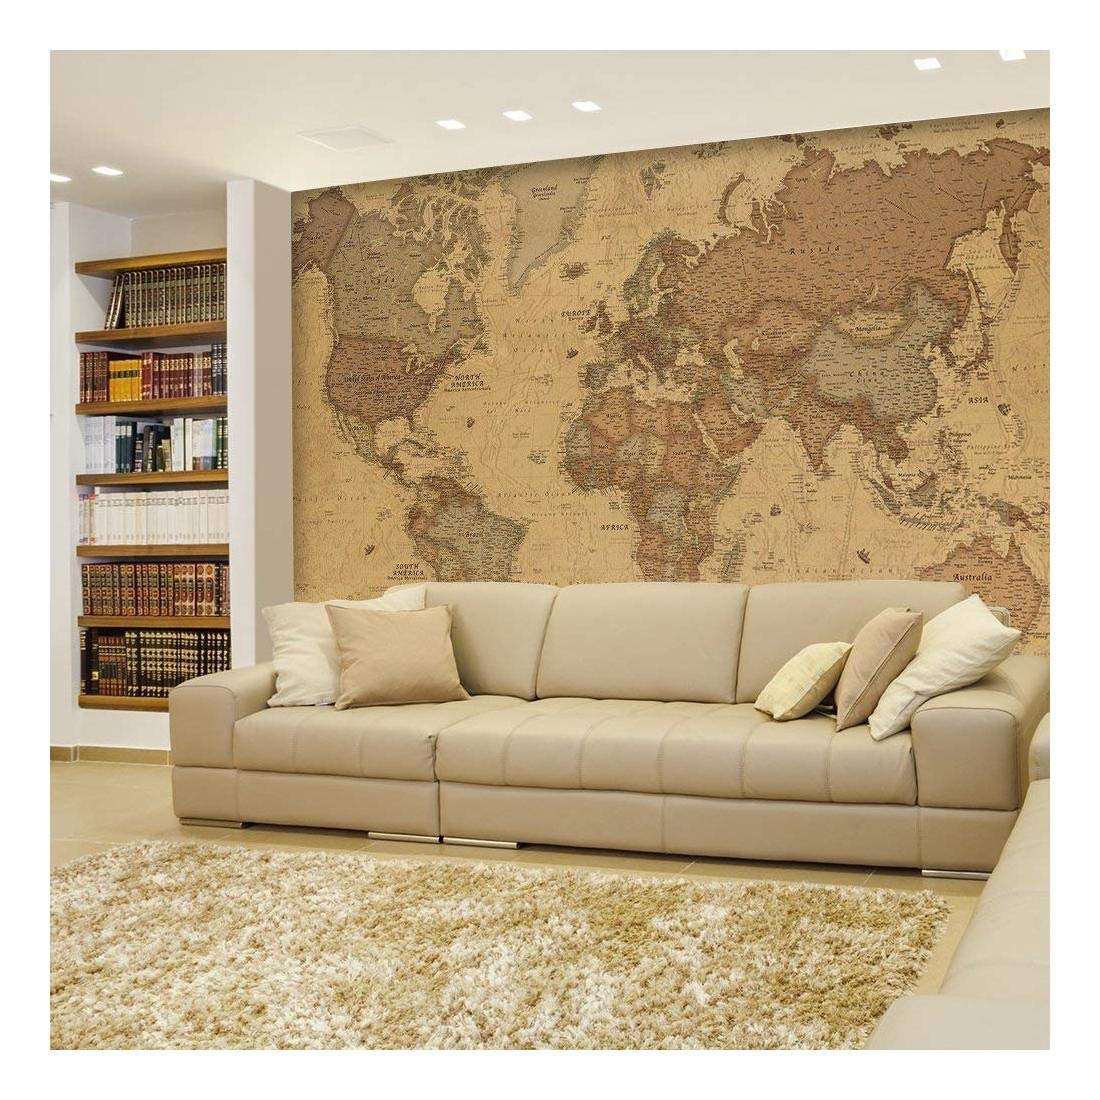 wall26 - Antique Monochrome Vintage Political World Map Wallpaper - Wall Mural, Removable Sticker, Home Decor - 66x96 inches by wall26 (Image #1)